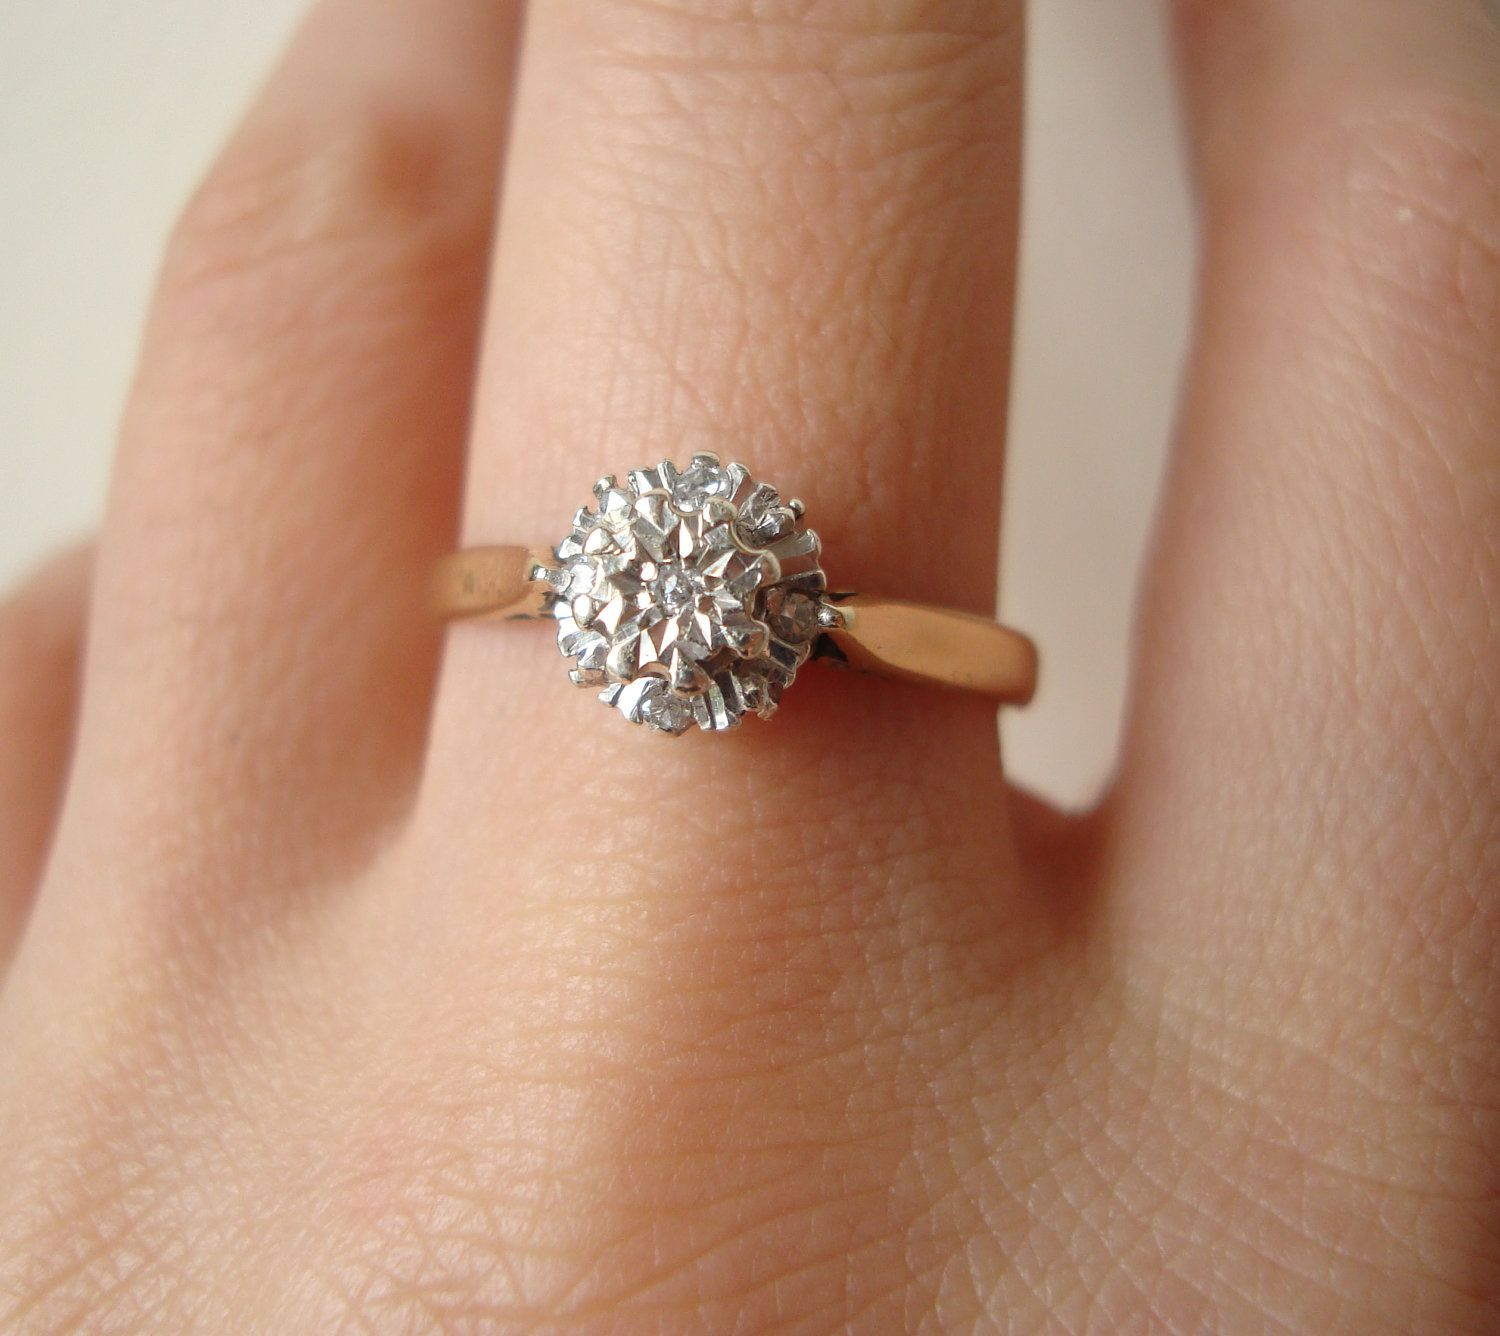 Vintage 9k Gold Diamond Flower Cluster Ring, Diamond & Gold Engagement Wedding Ring Approximate Size US 7.25 / 7.5. $210.00, via Etsy.